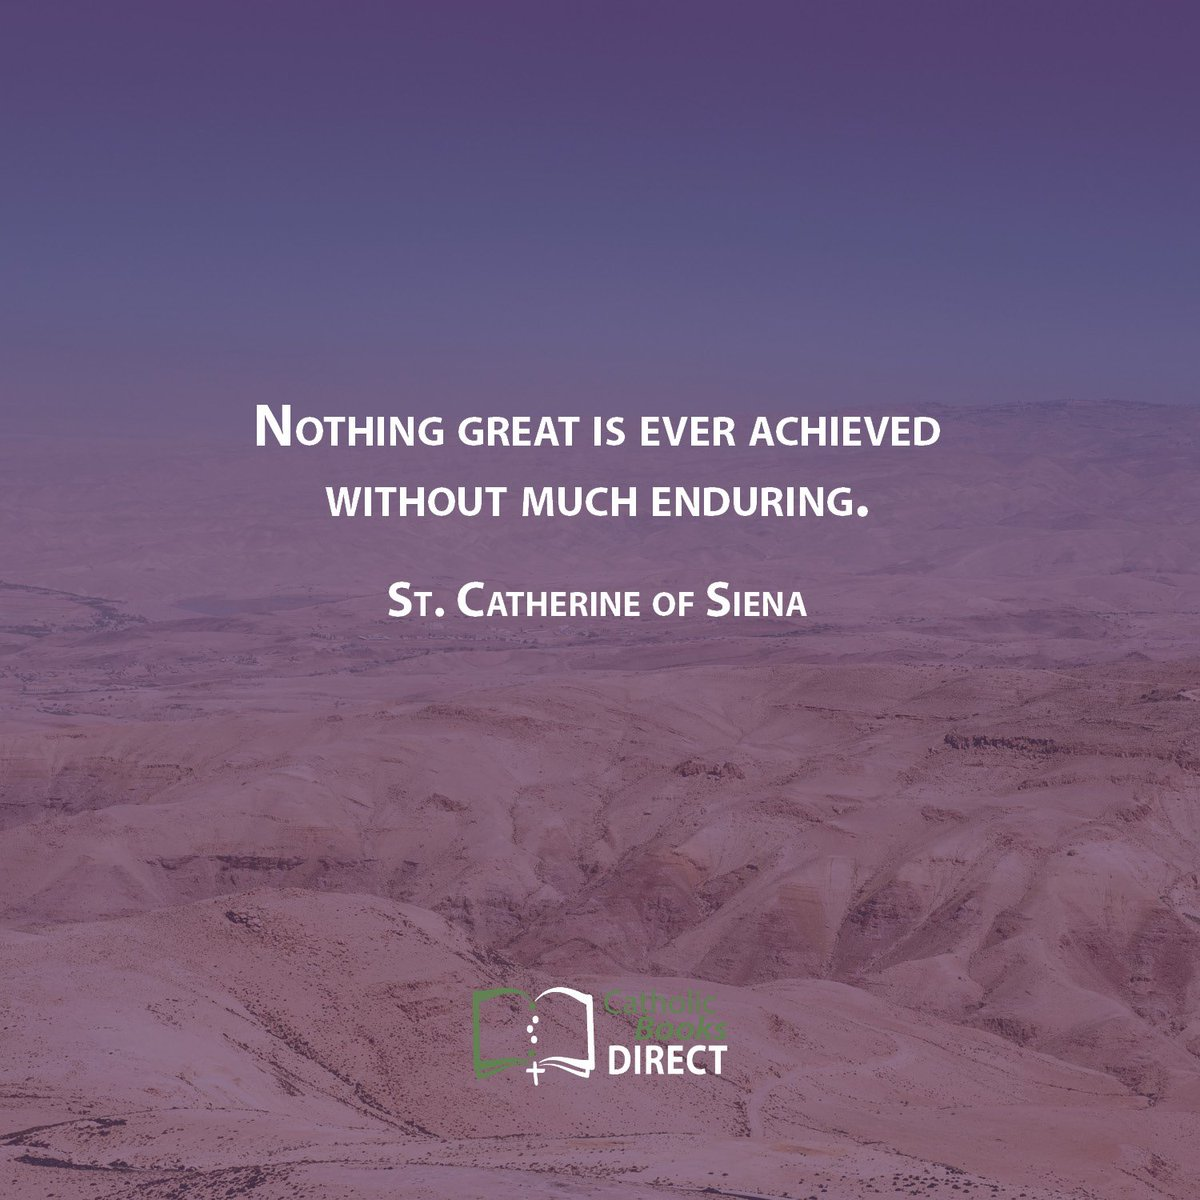 Some food for thought from St. Catherine of Siena as we journey towards Good Friday! #Saints #Catholic #Lent #LentenSeason